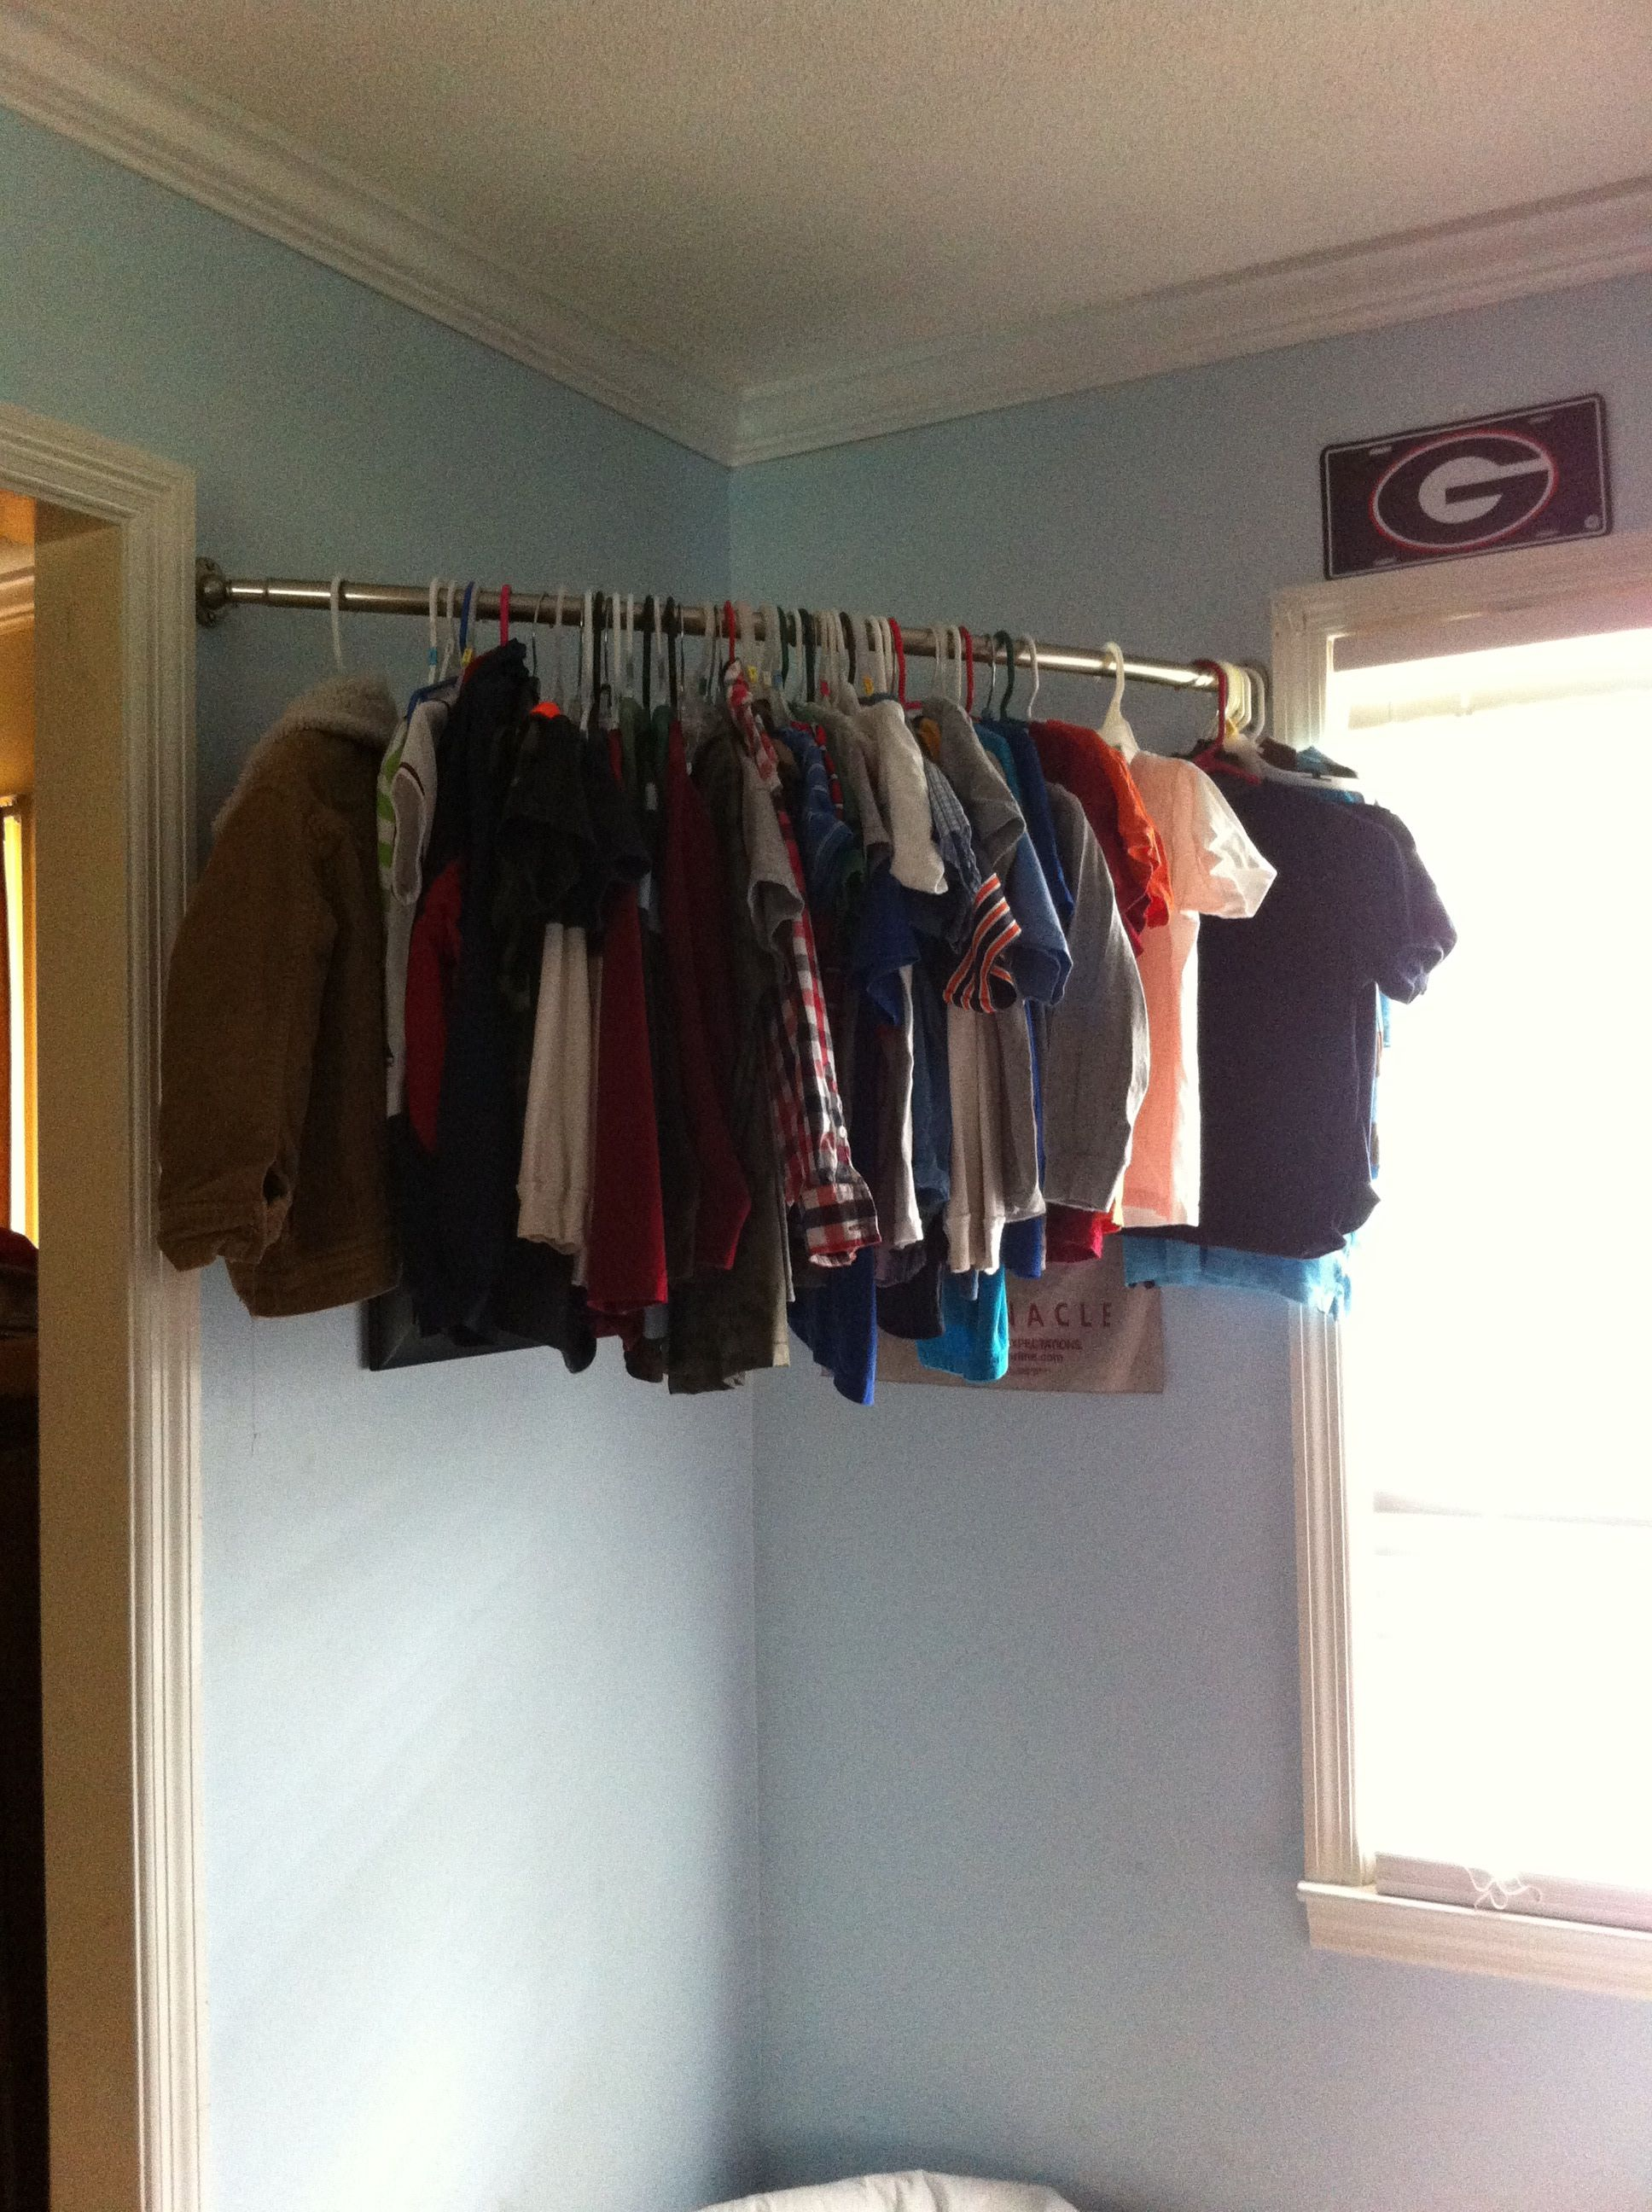 Curved Closet Rod Simple No Closet I Used A Curved Shower Rod For My Son's Clothes 2018